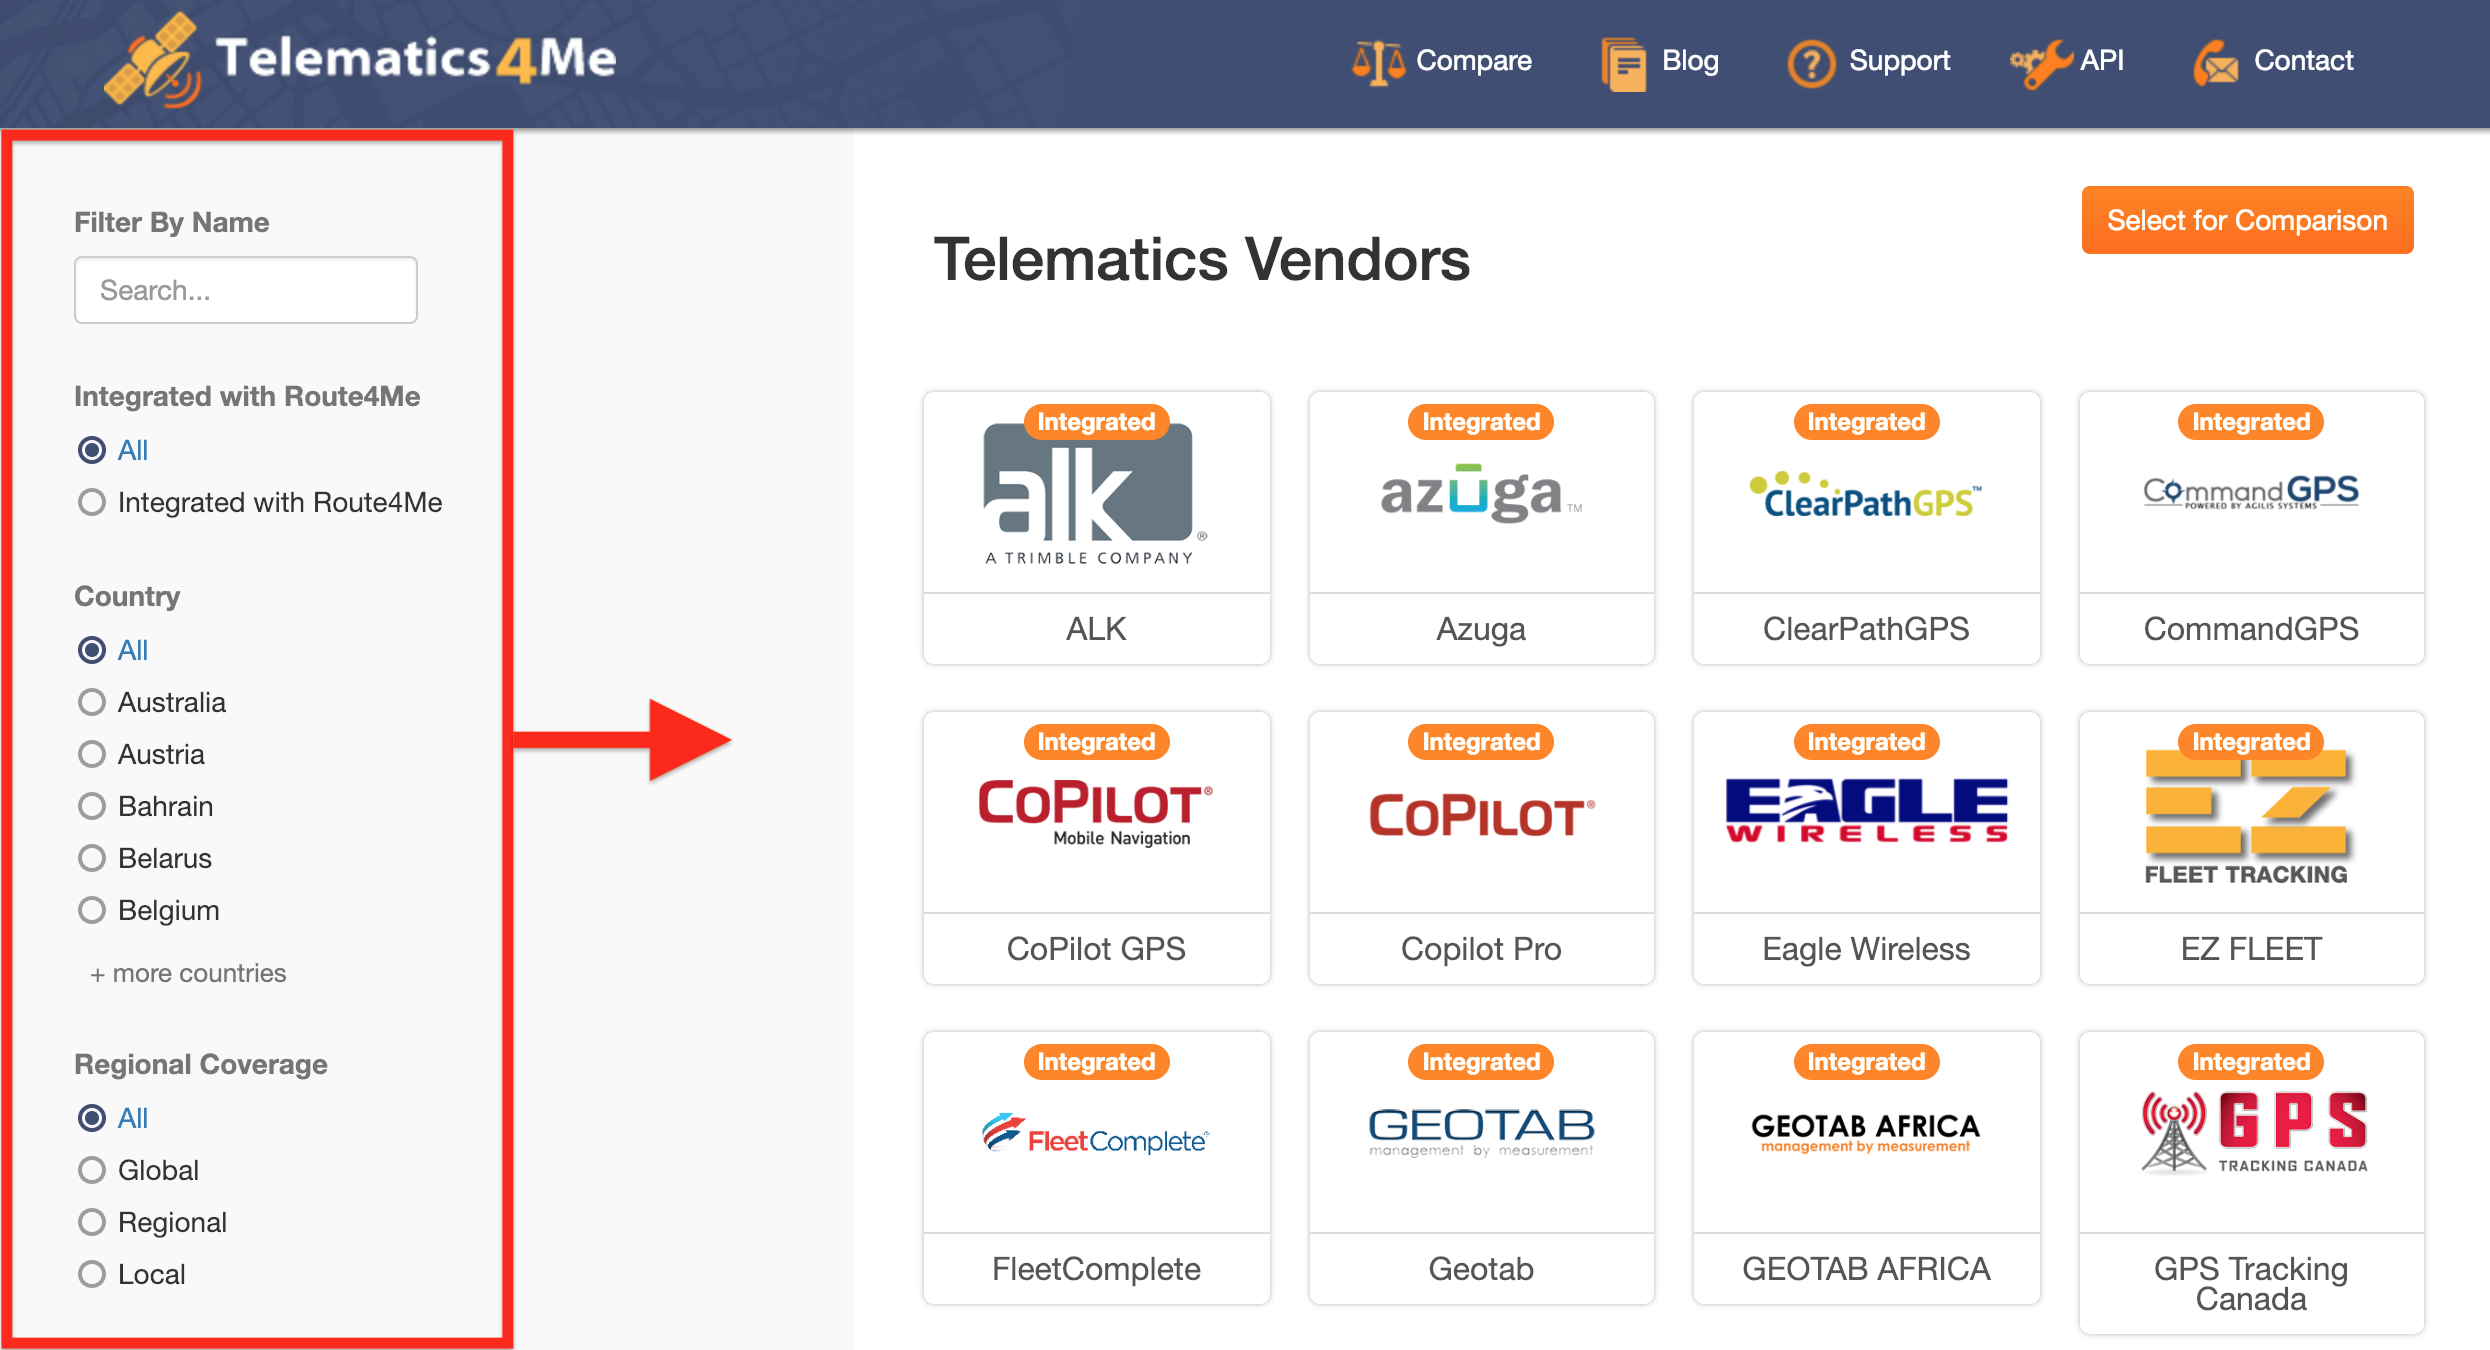 Route4Me telematics vendors filters in action